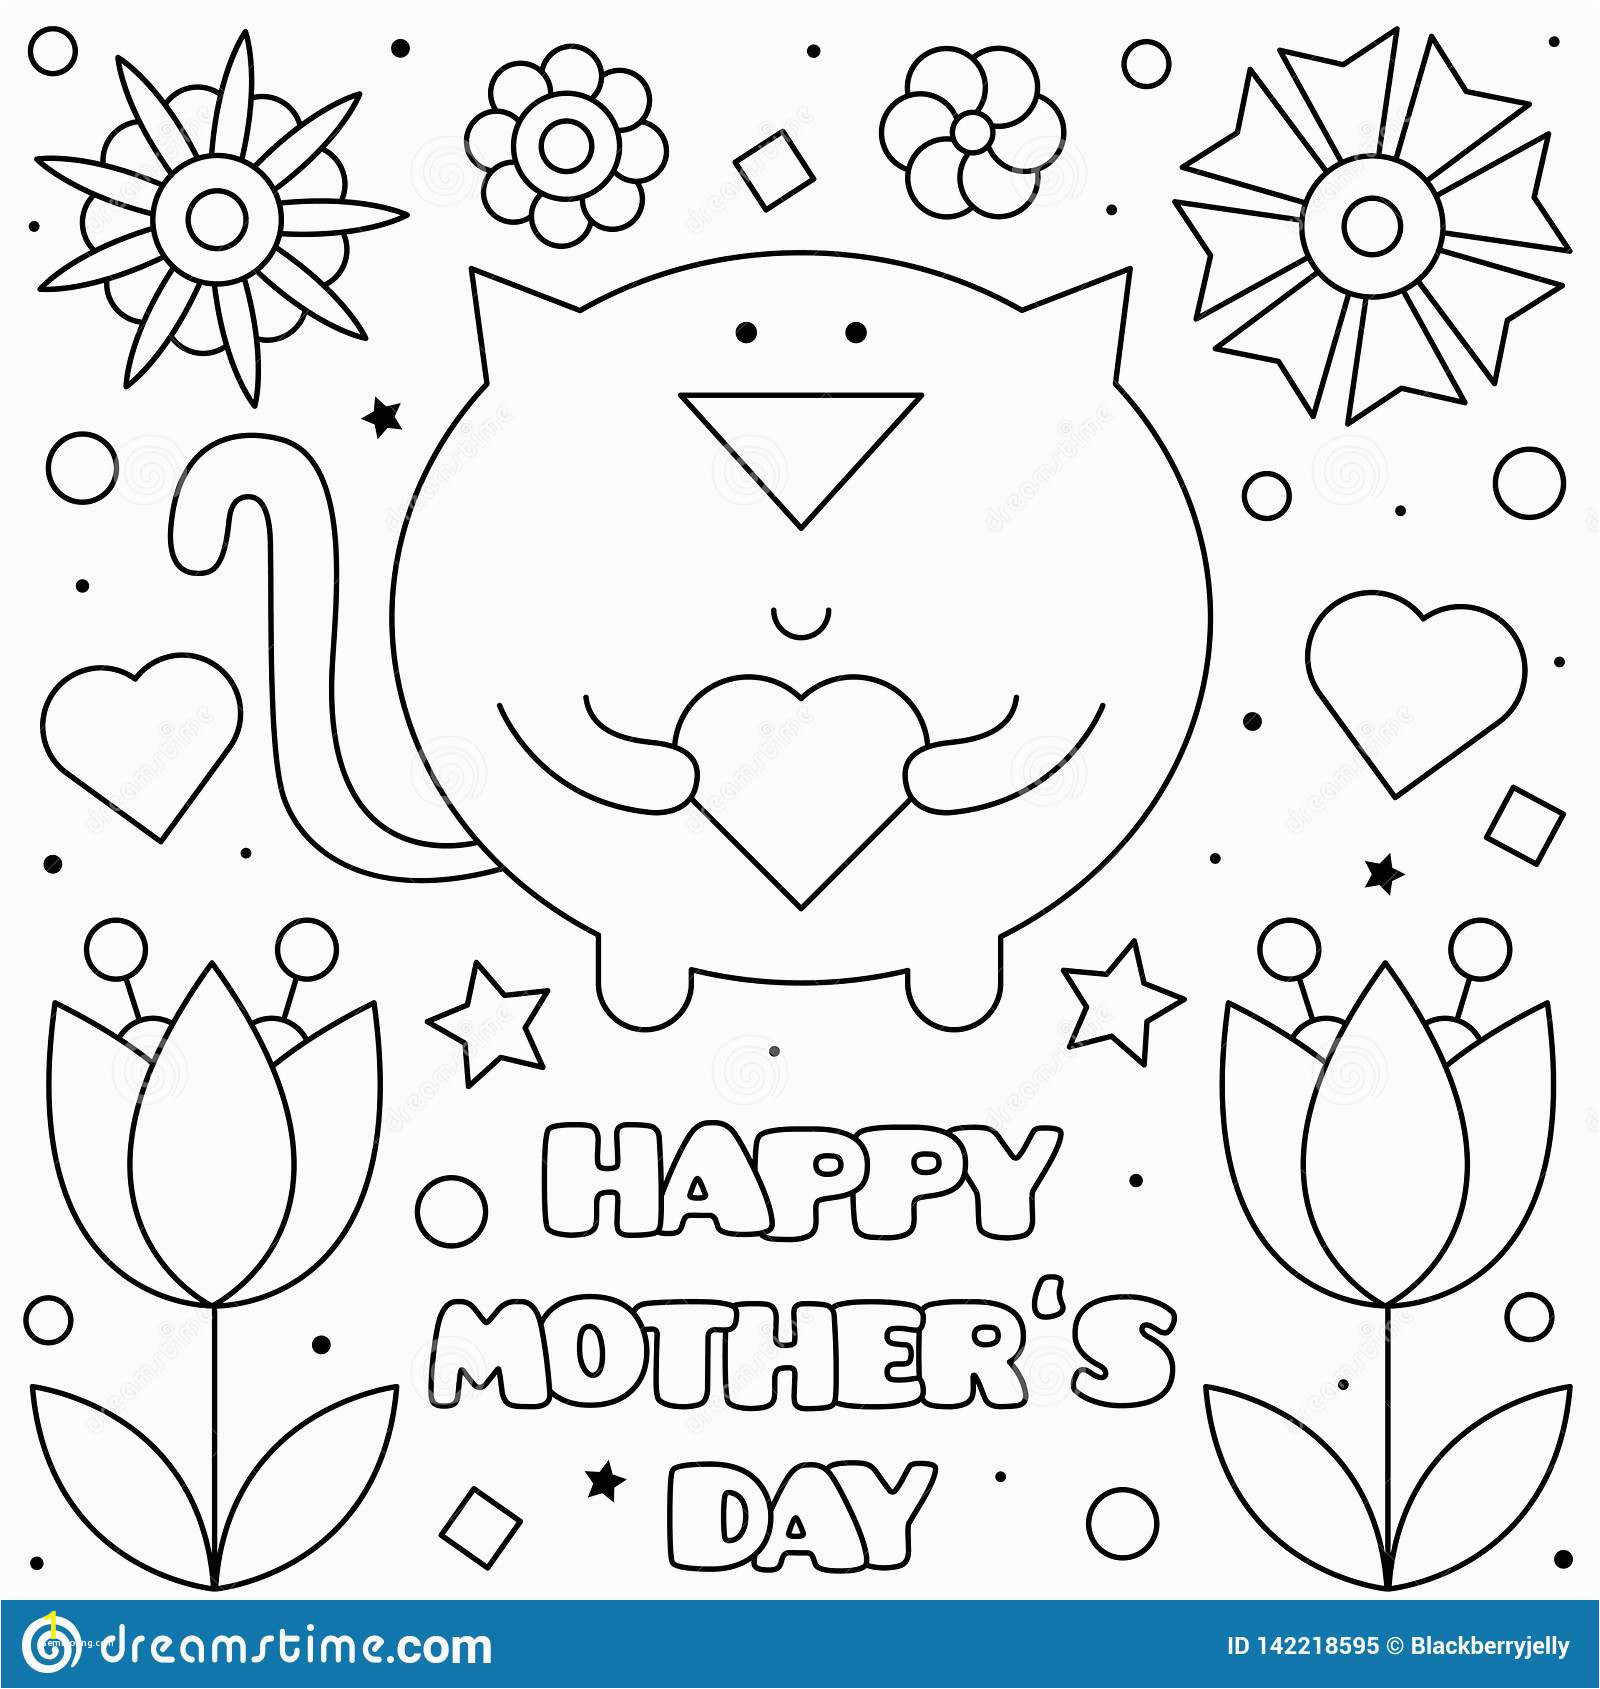 free adult coloring pages animals art happy mothers day coloring page vector illustration cat of free adult coloring pages animals